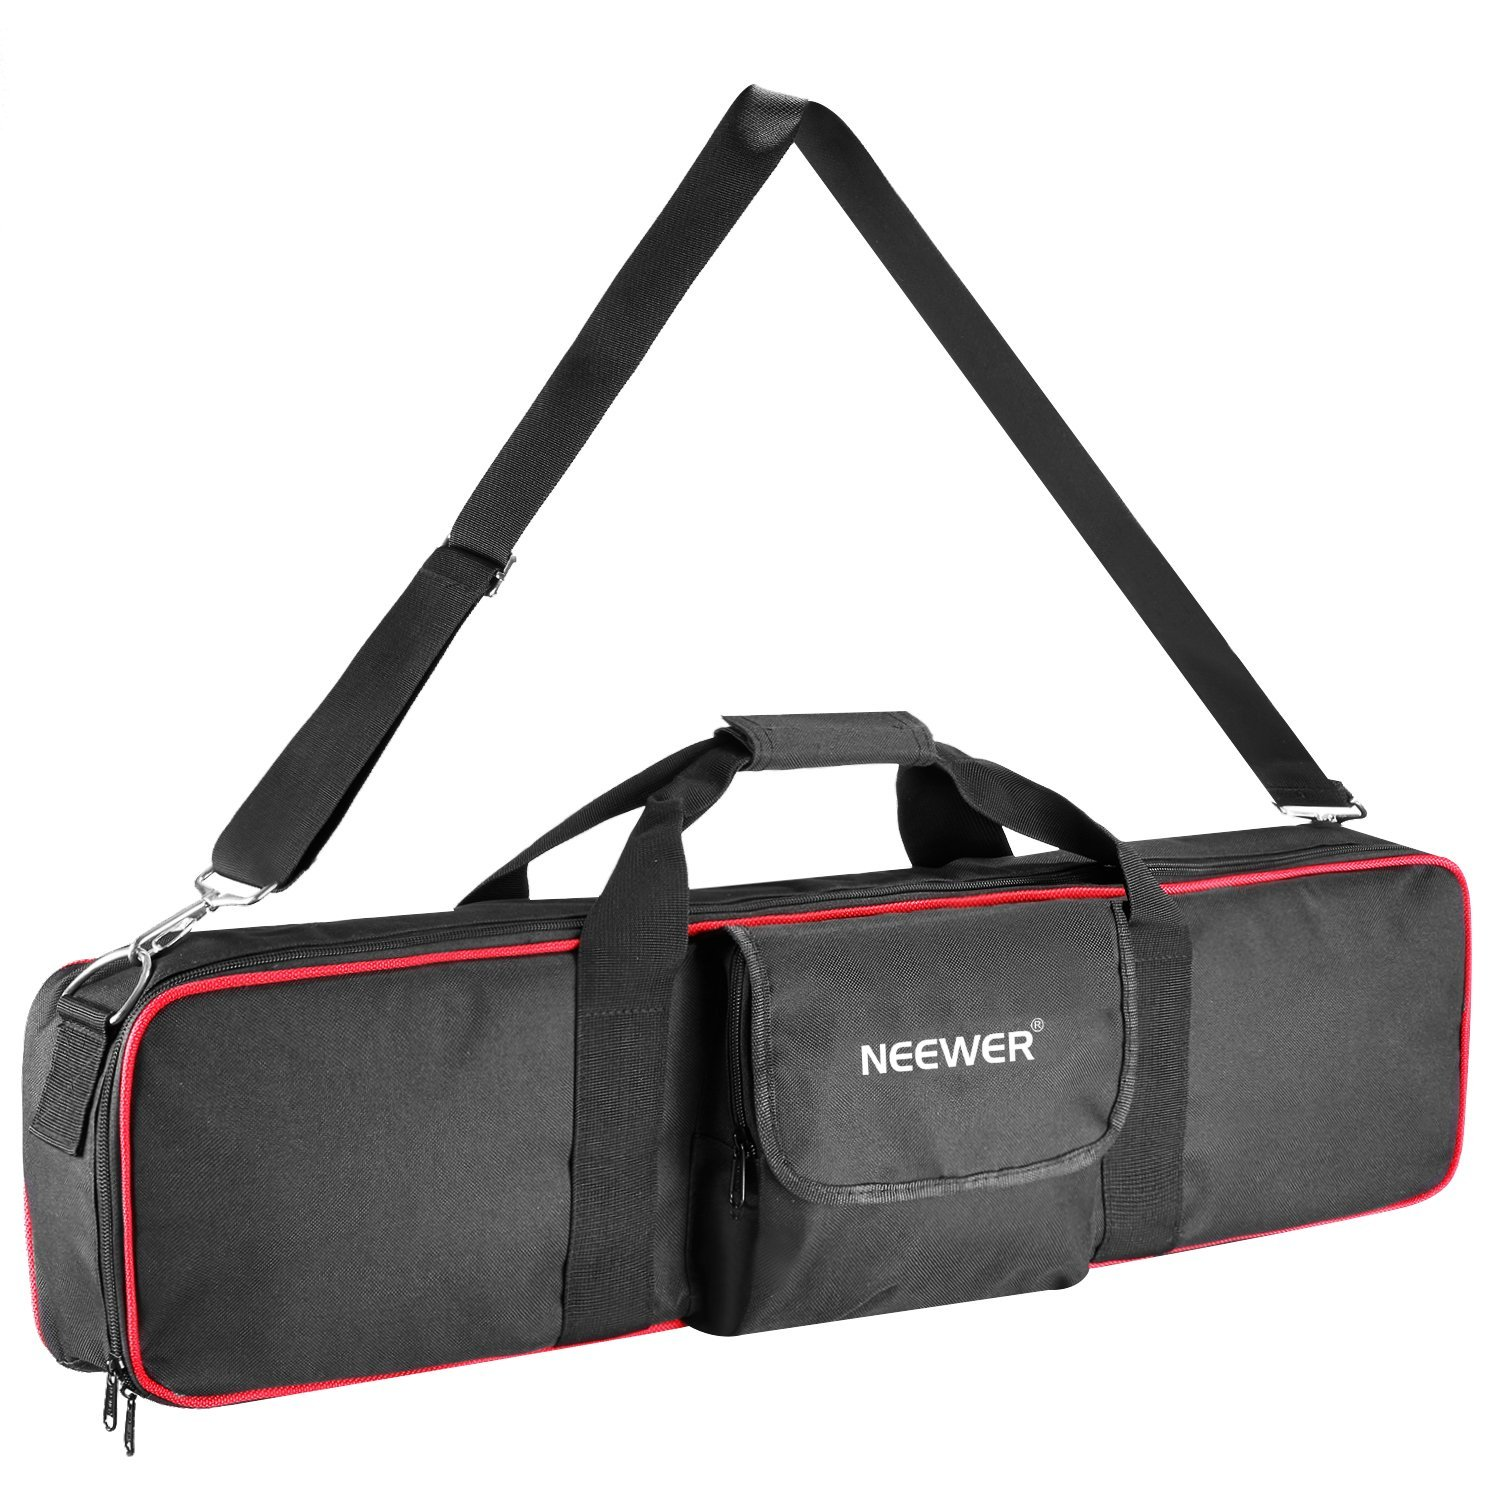 Neewer Large Photo Studio Lighting Equipment Carrying Bag 30x7x3.7inches with Shoulder Strap and Handle for Light Stand, Tripod, Umbrella, Monolight, LED Light, Flash and Other Accessories (Black/Red)